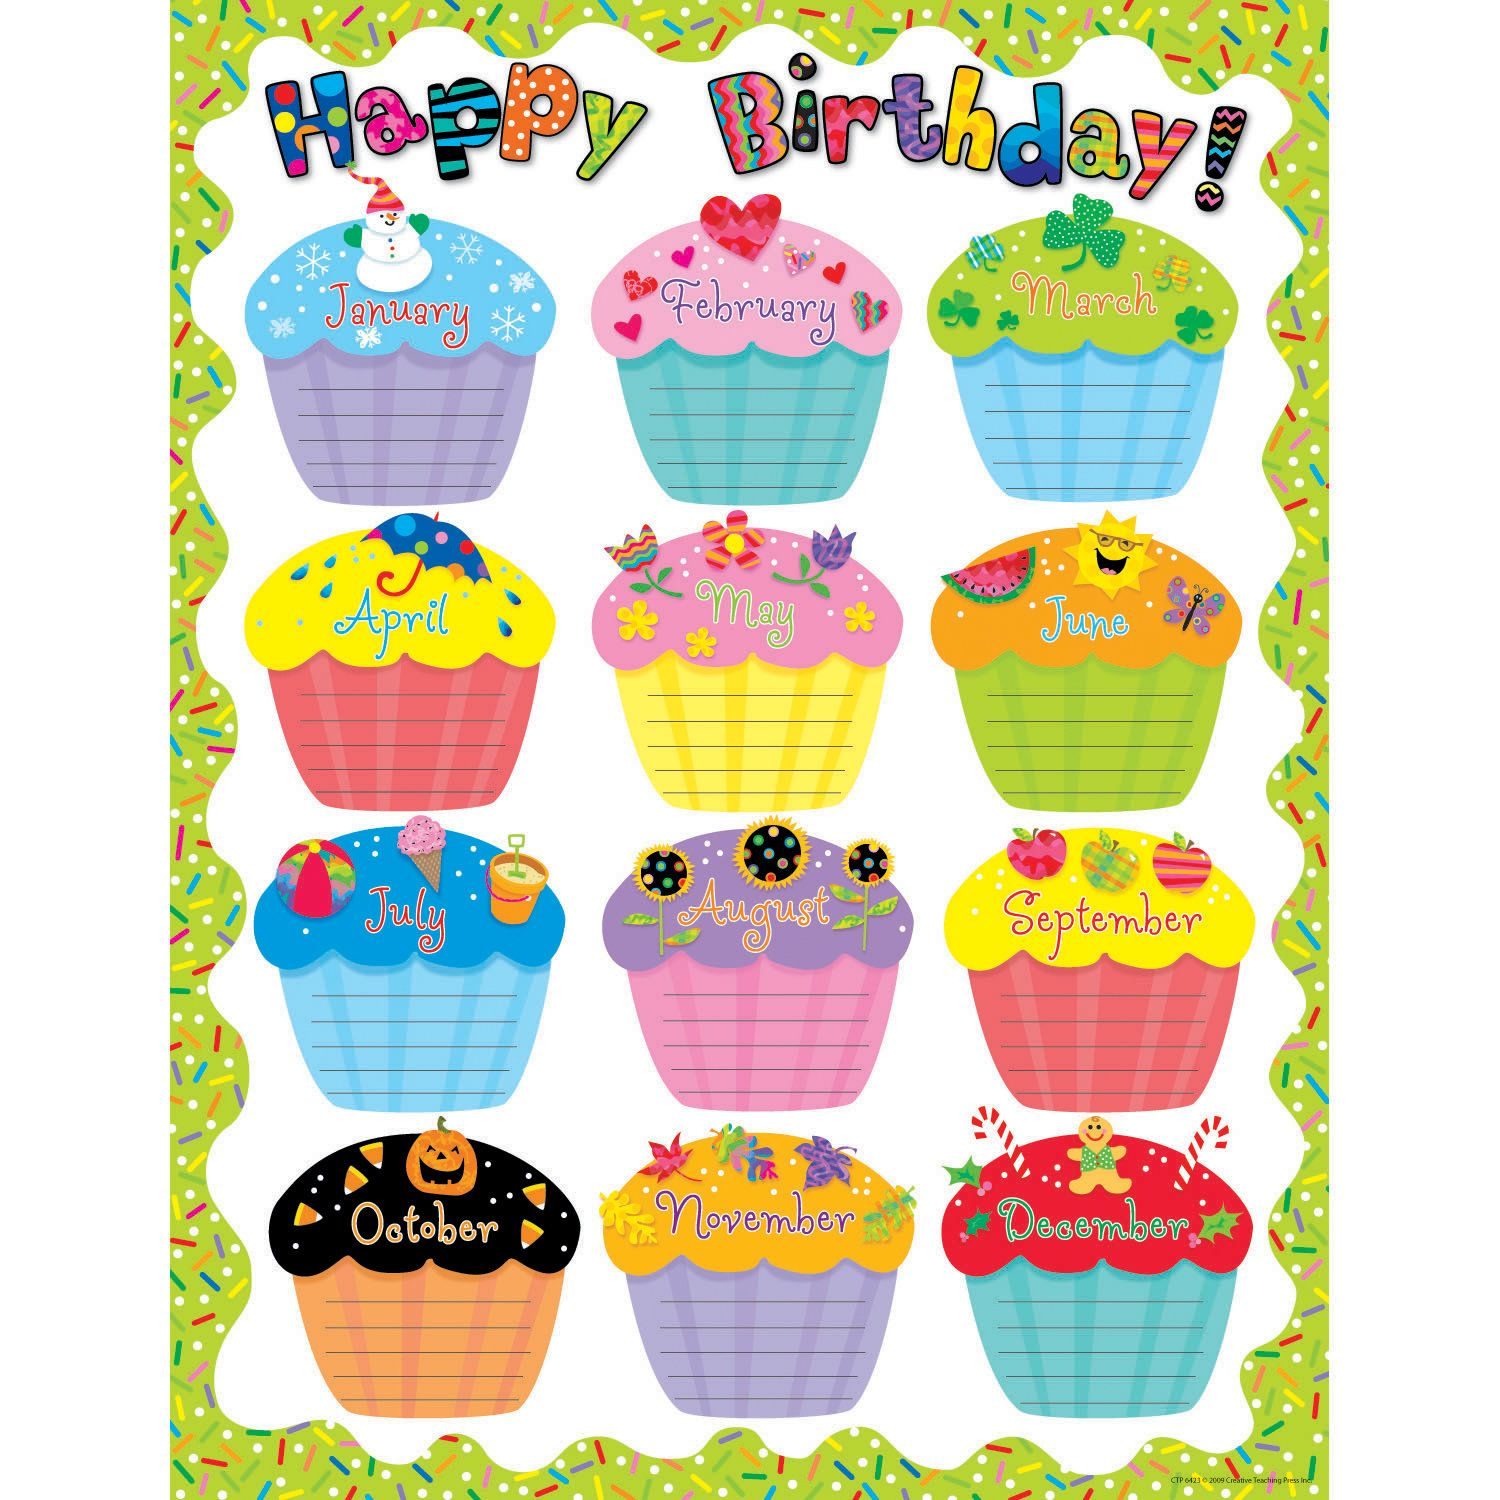 Birthday clipart bulletin. Happy chart time to